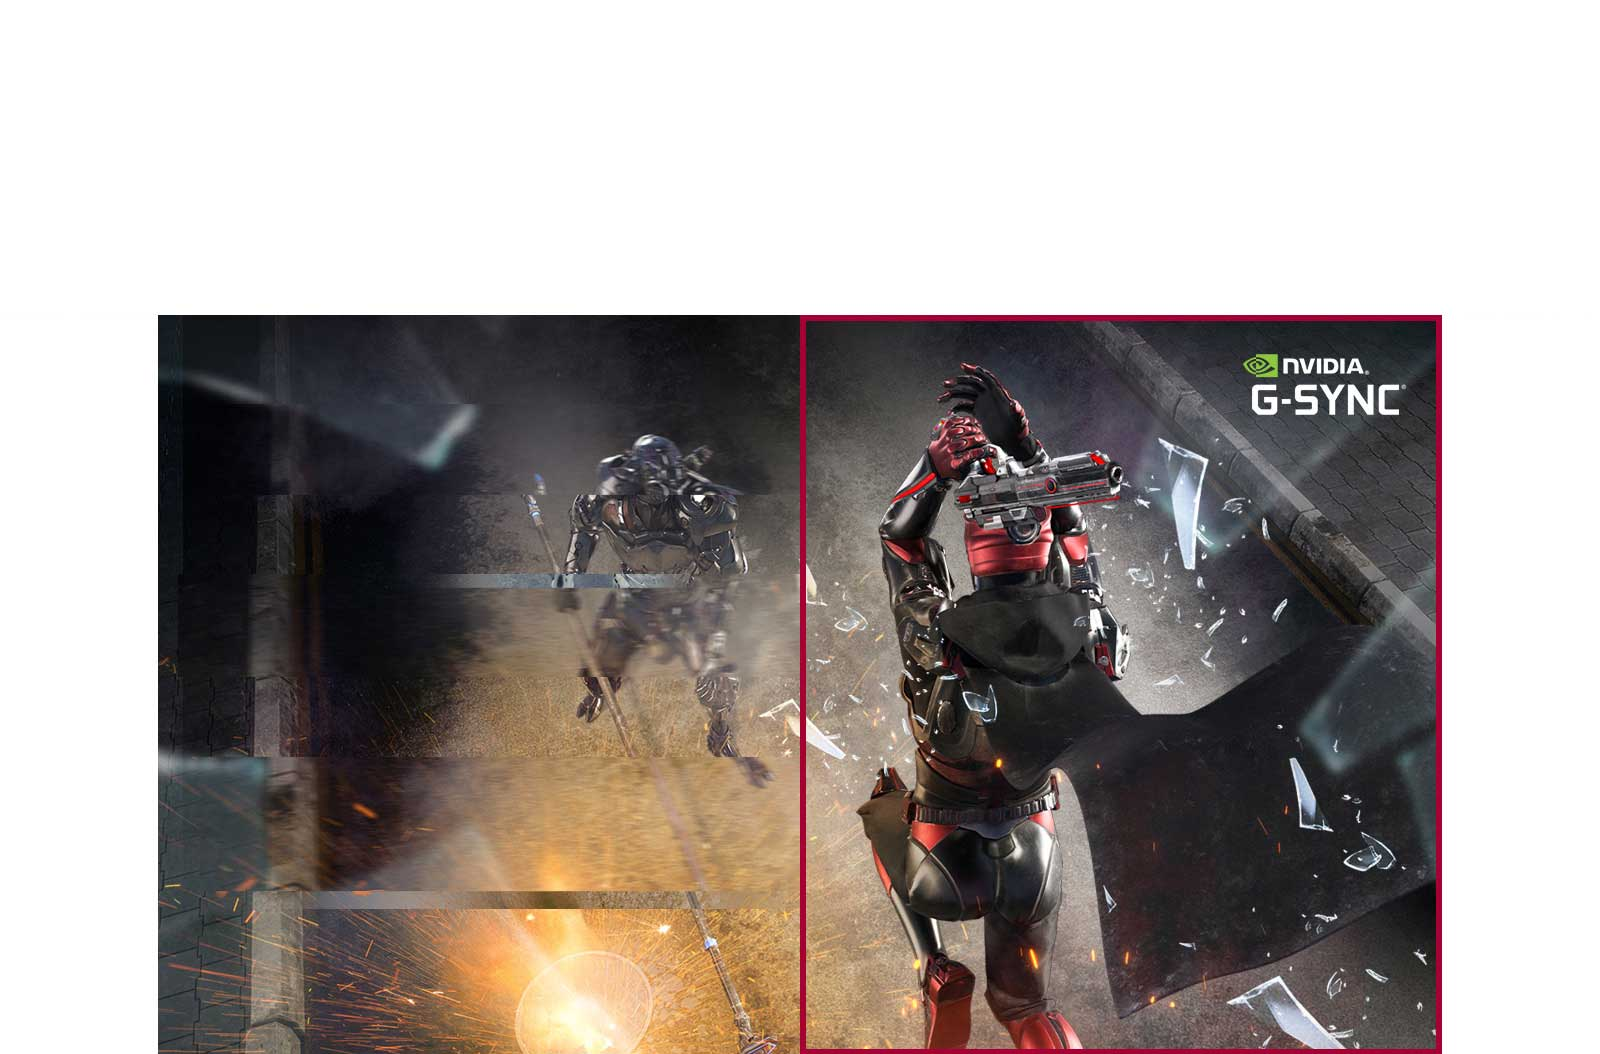 Gaming graphic demonstrating reduced screen tearing with G-SYNC feature on